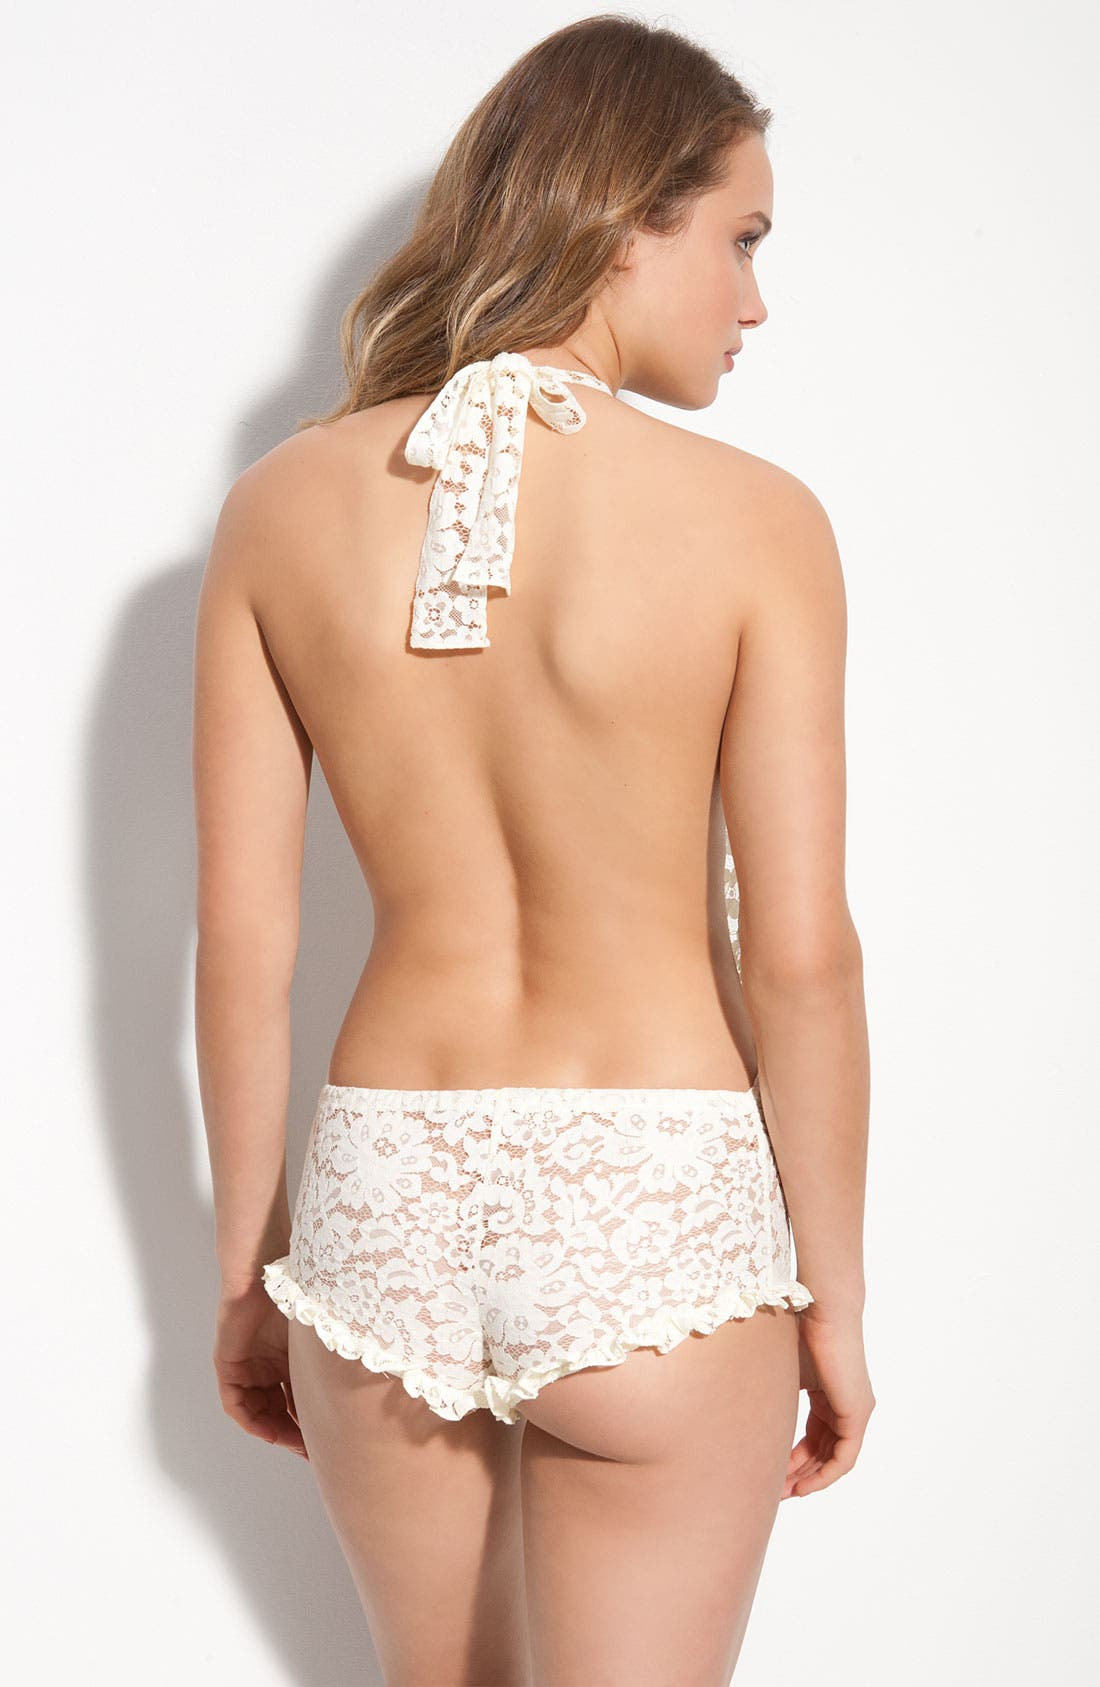 'All Things Nice' Lace Teddy,                             Alternate thumbnail 2, color,                             Sugar